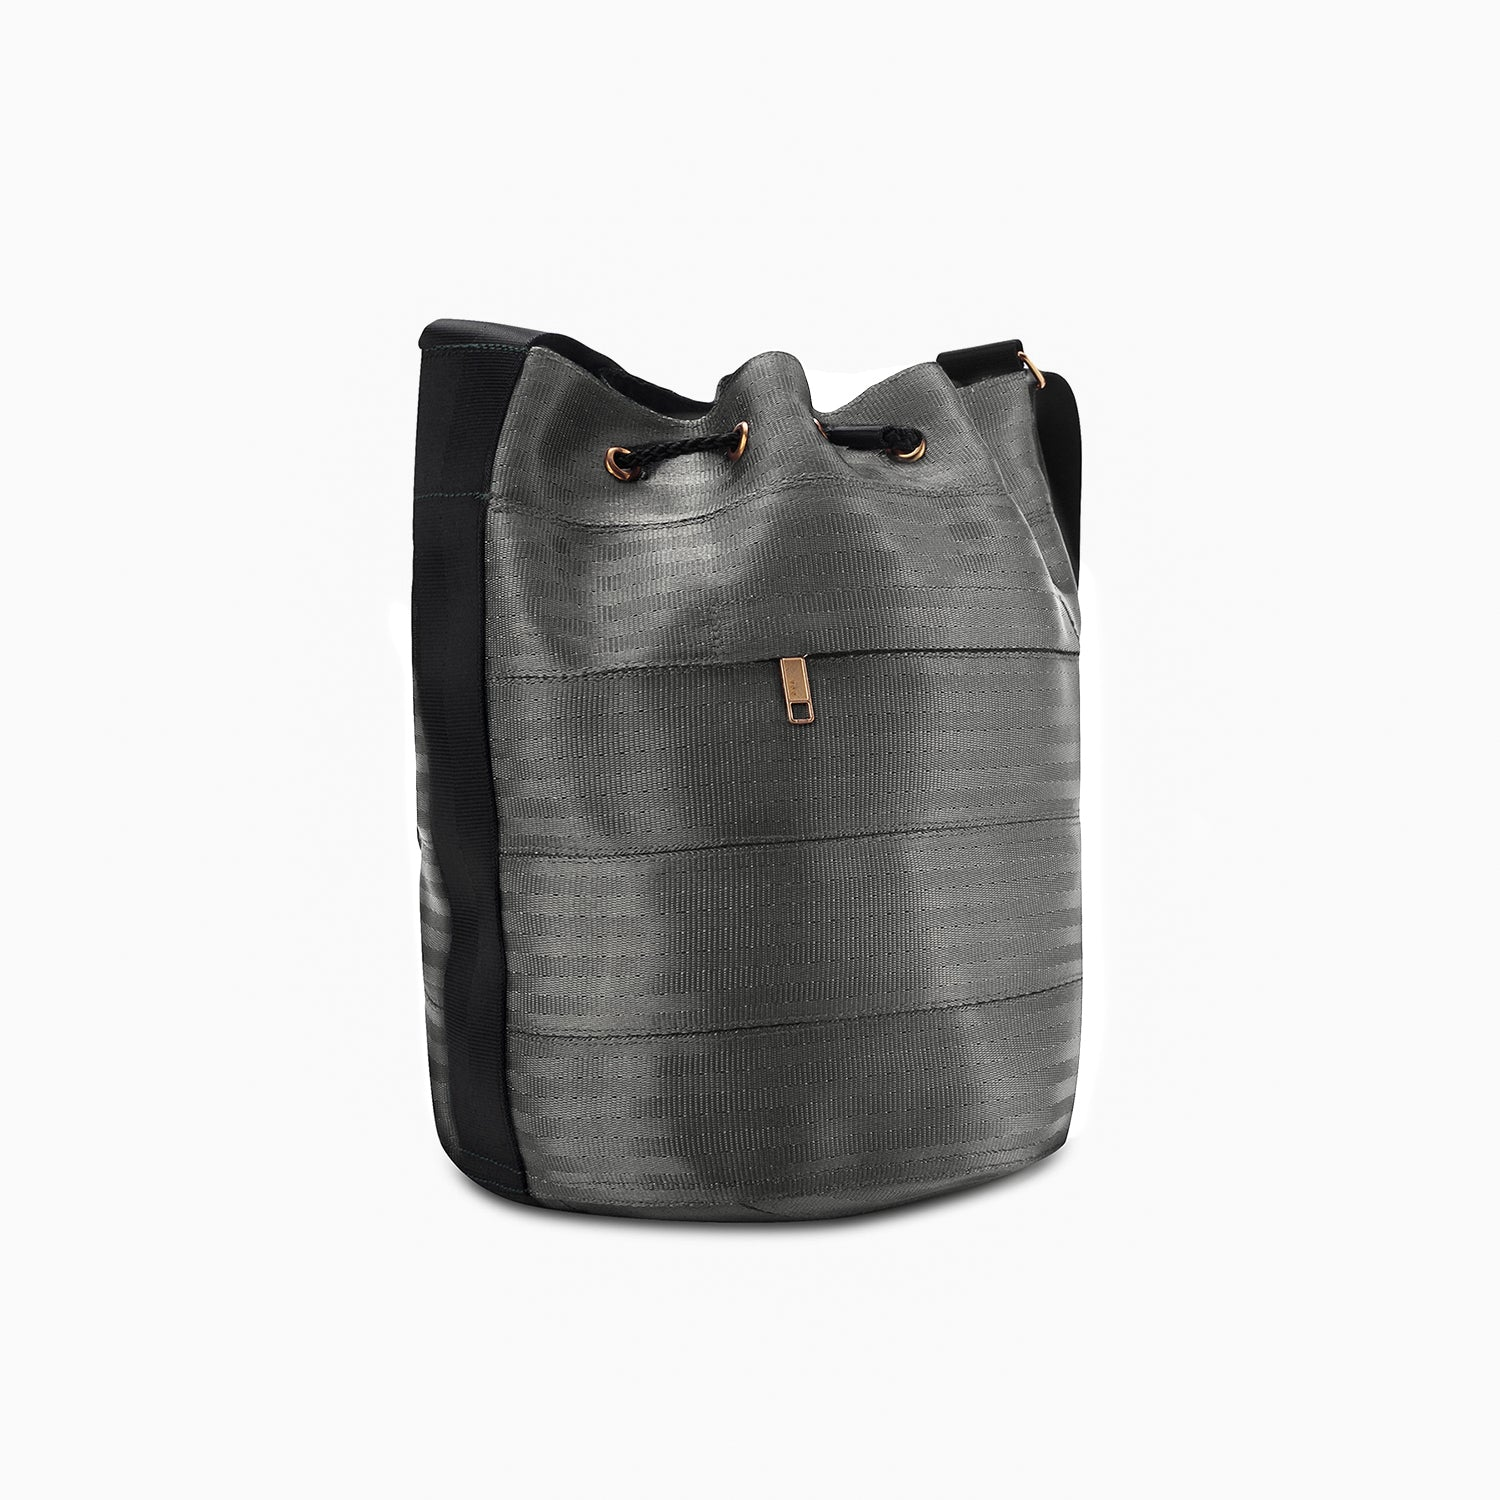 Balsam Upcycled Vegan Seatbelt Bucket Bag (3 Colours Available) by Paguro Upcycle